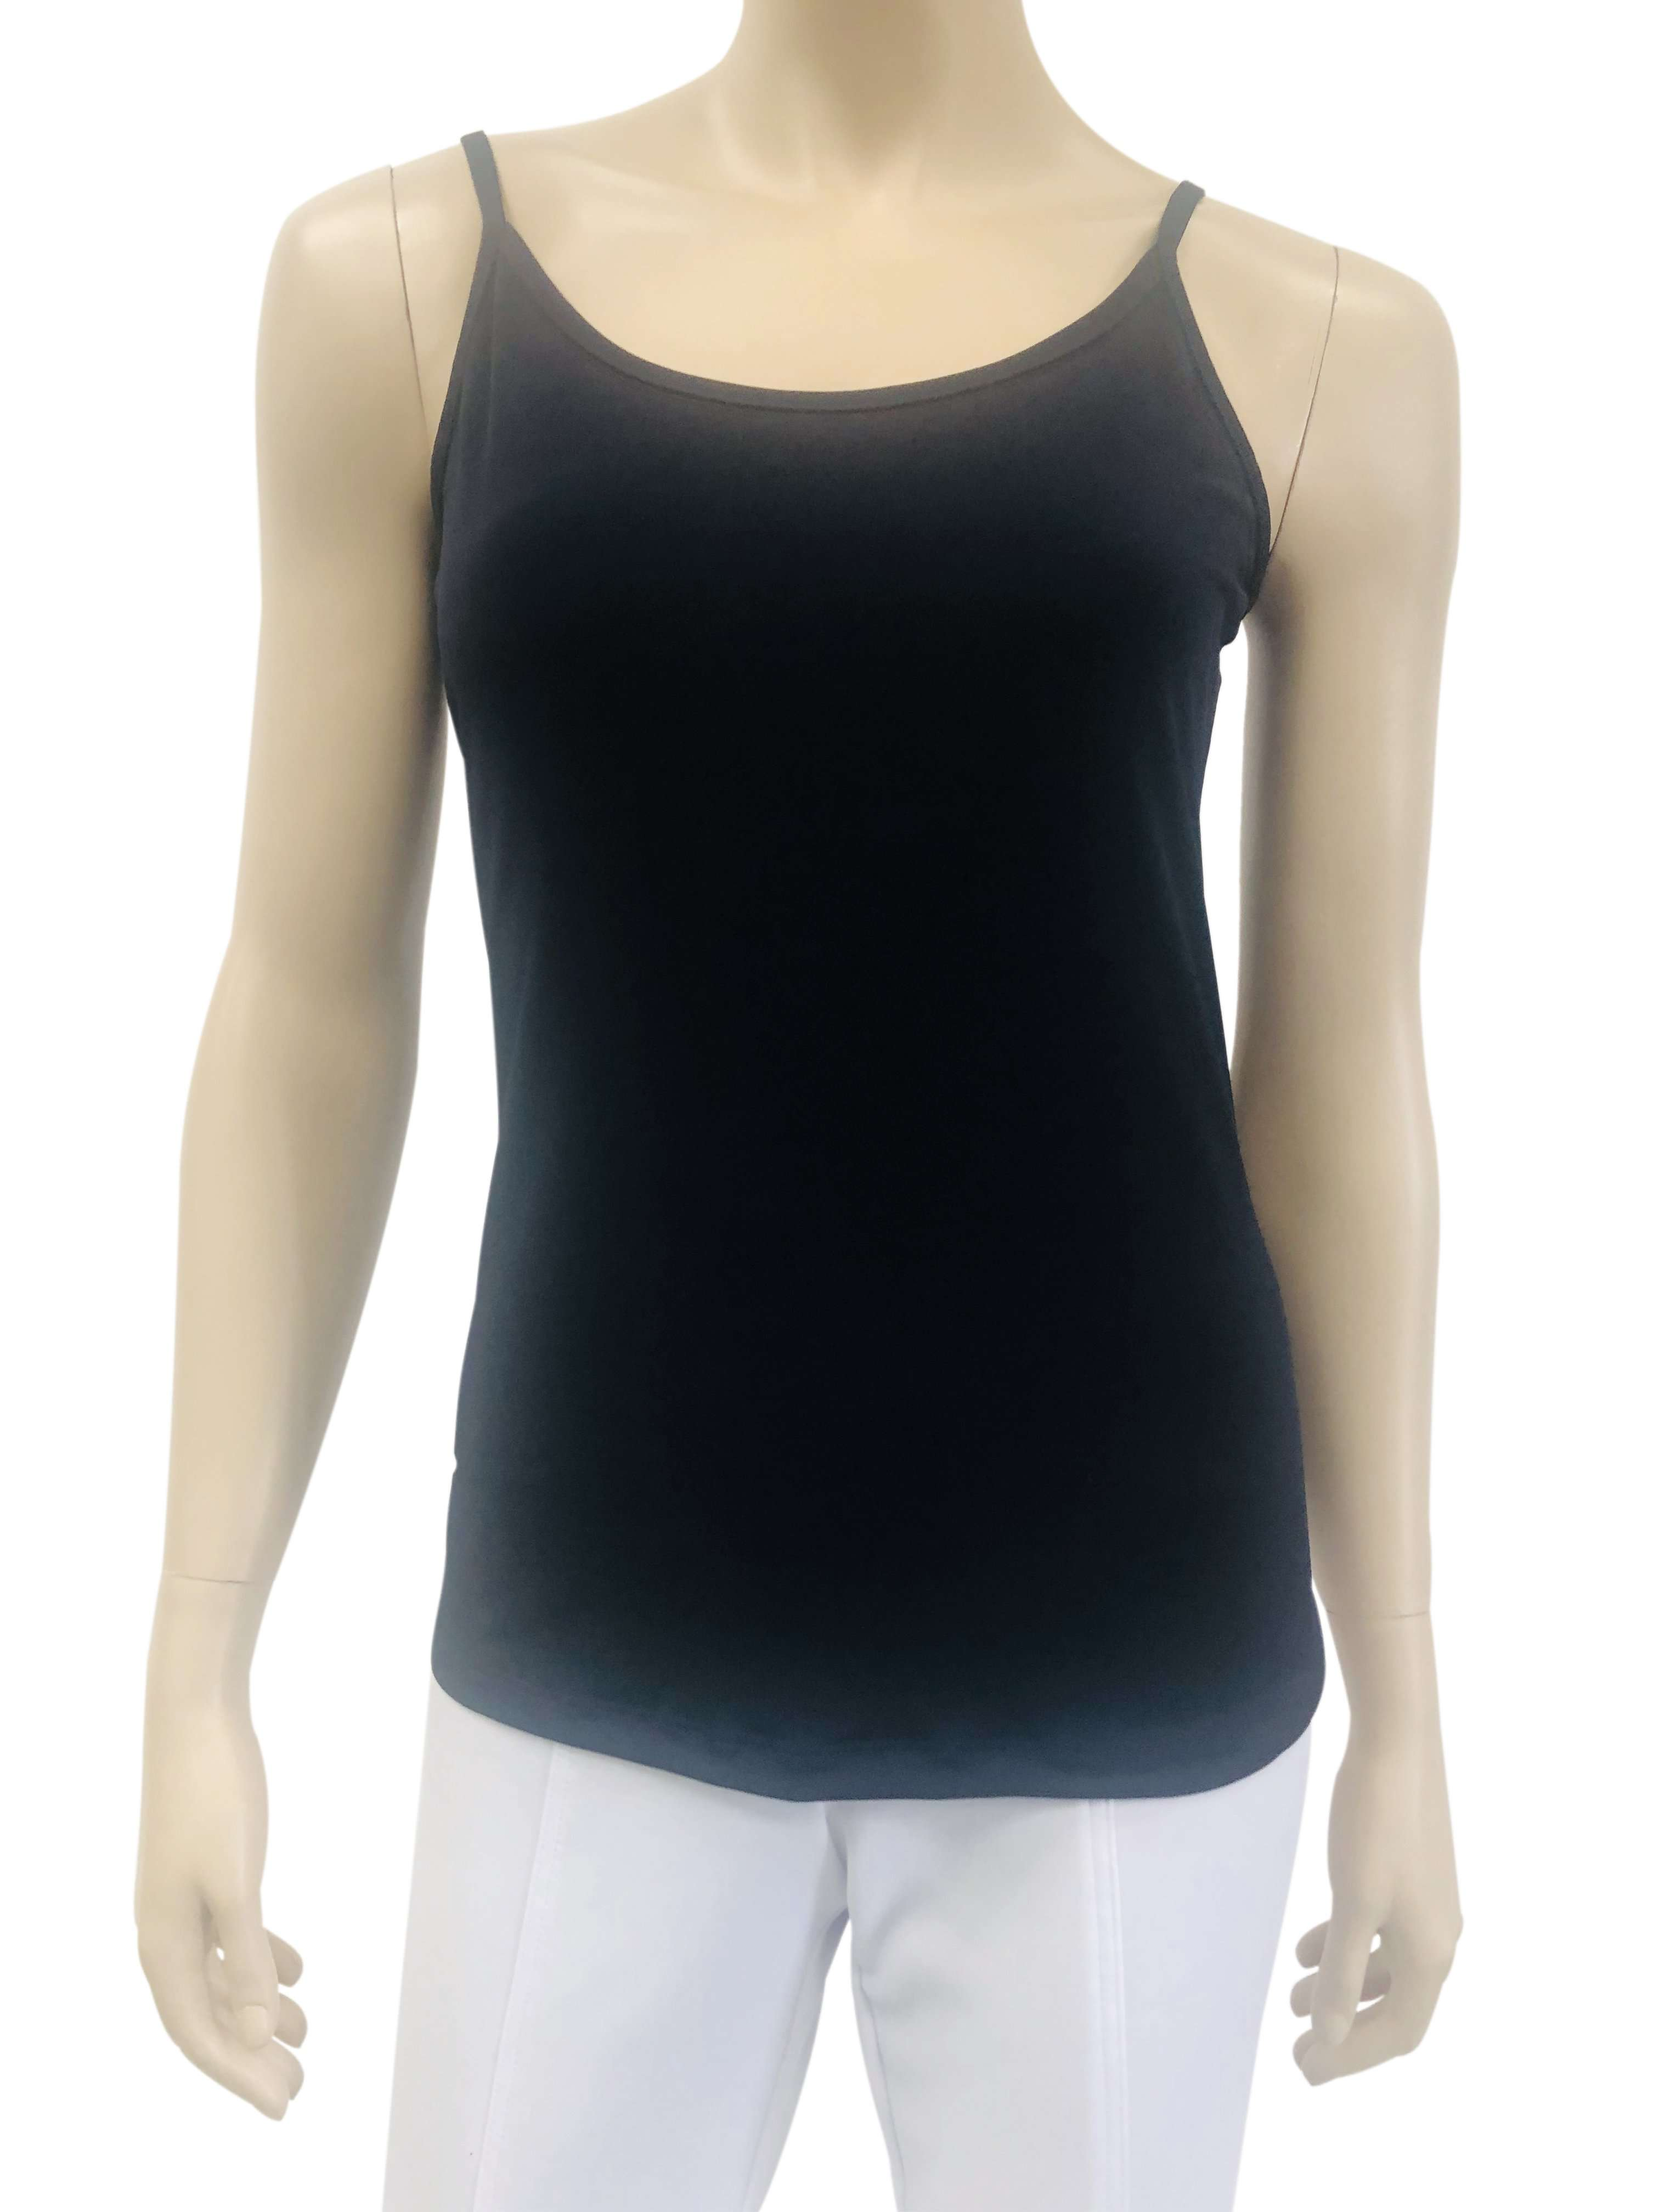 Womens Navy Spaghetti Strap Camisole - Yvonne Marie - Yvonne Marie